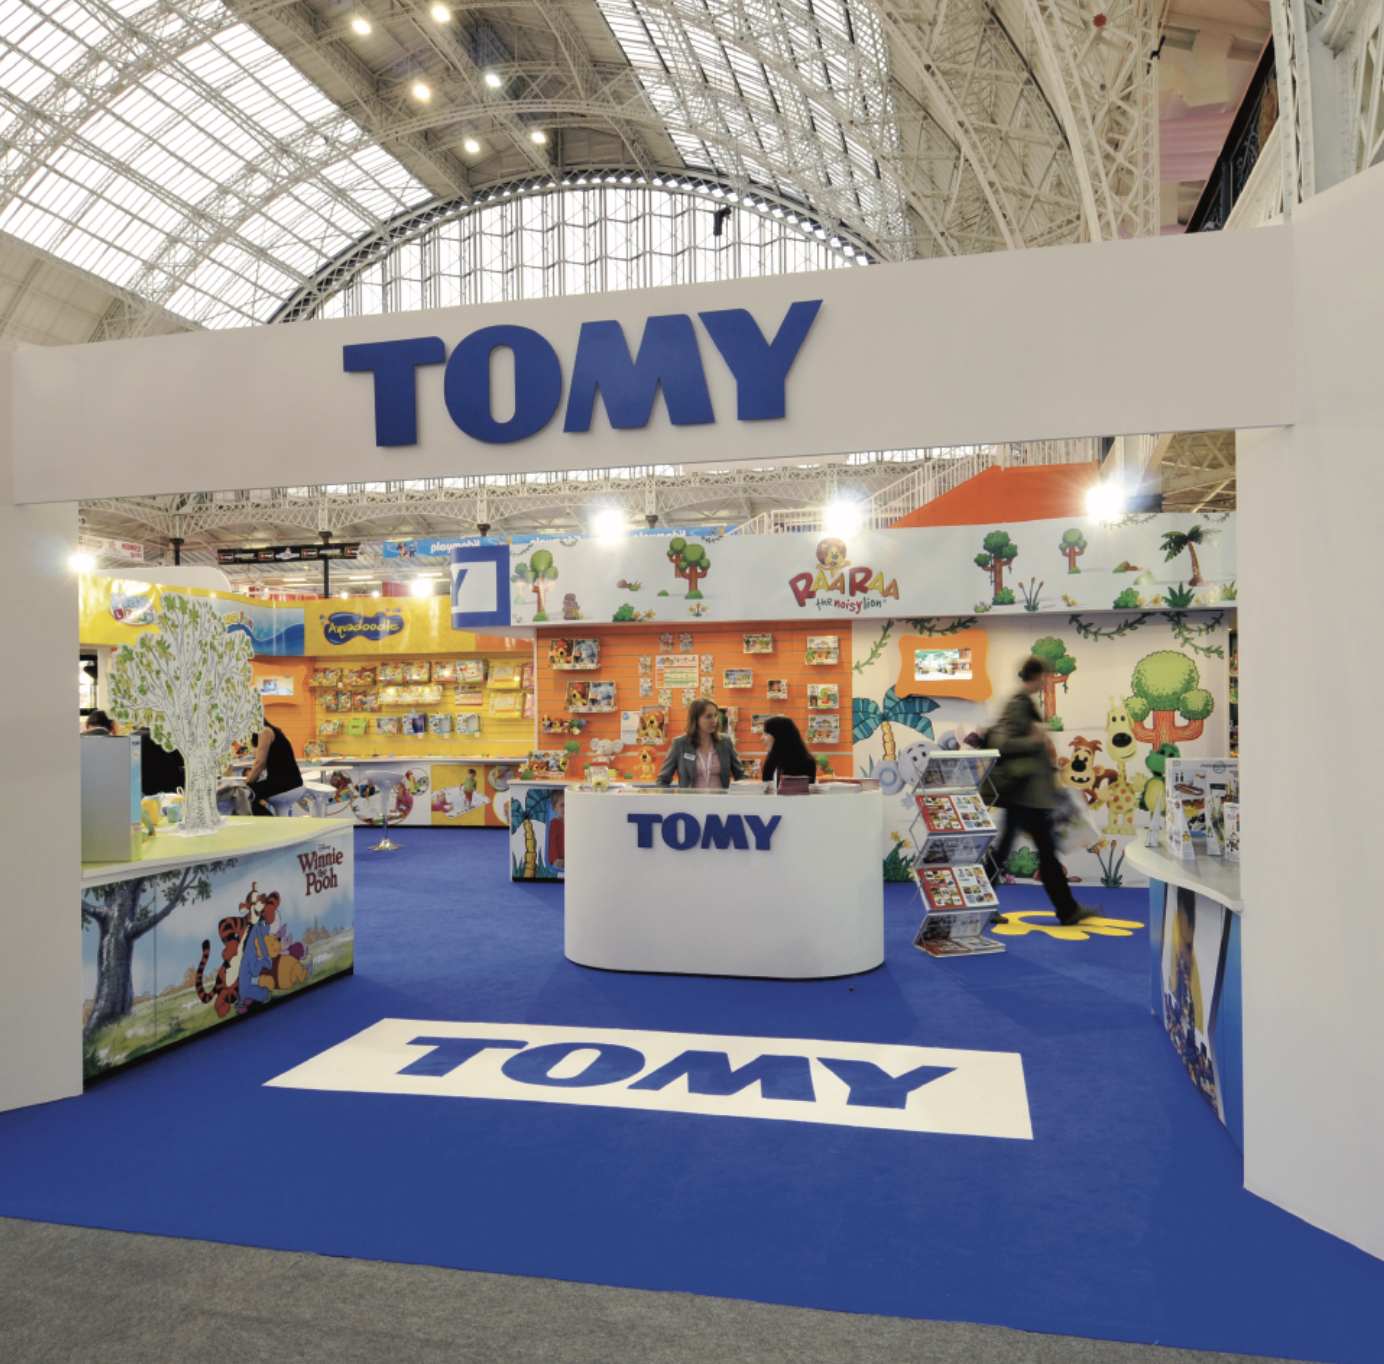 Tomy exhibition solution